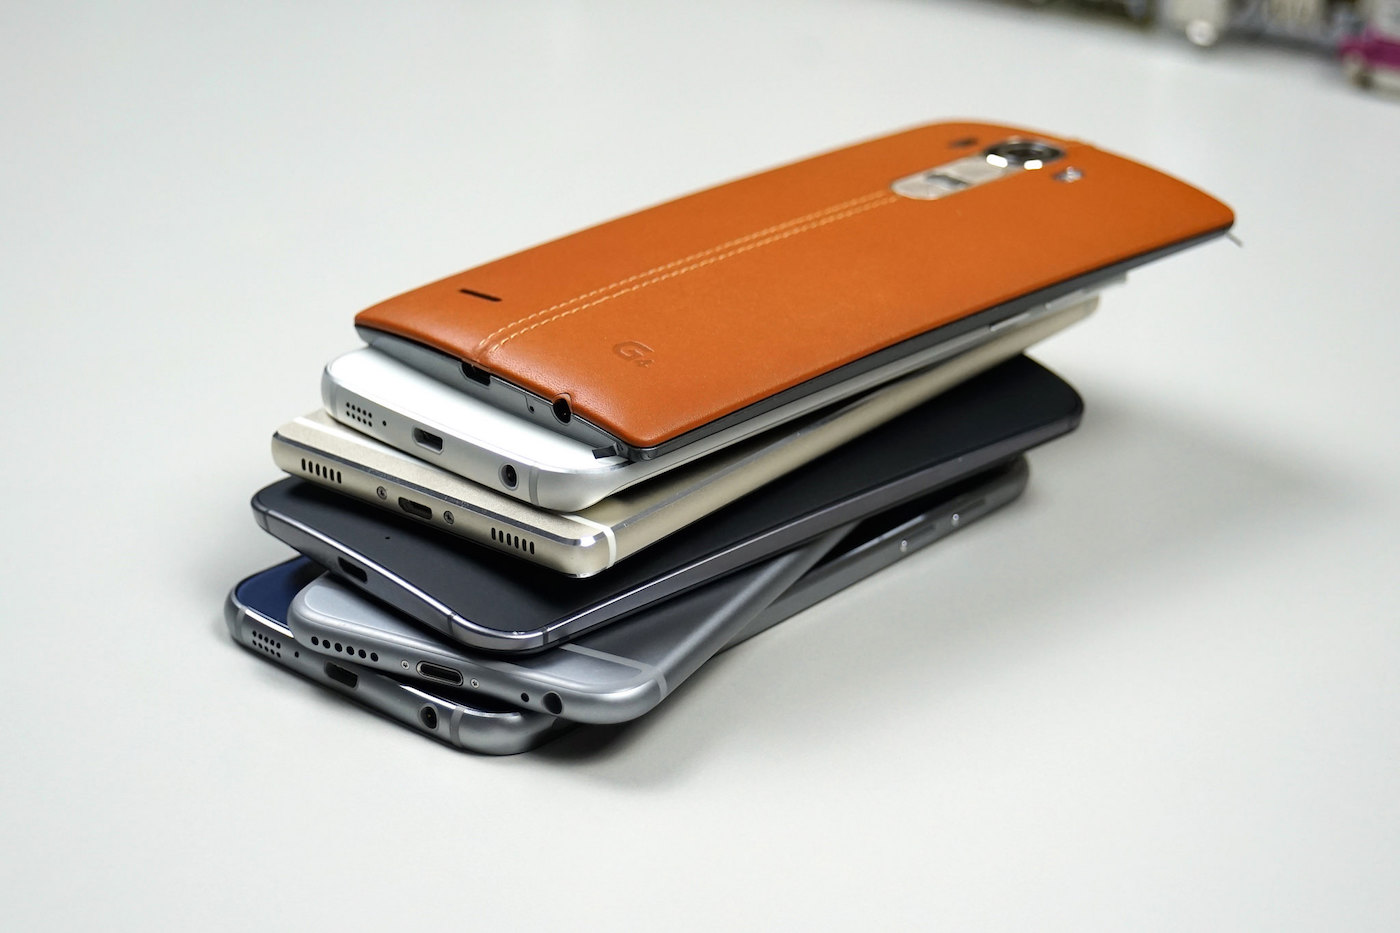 stack-of-phones-mobile-cc